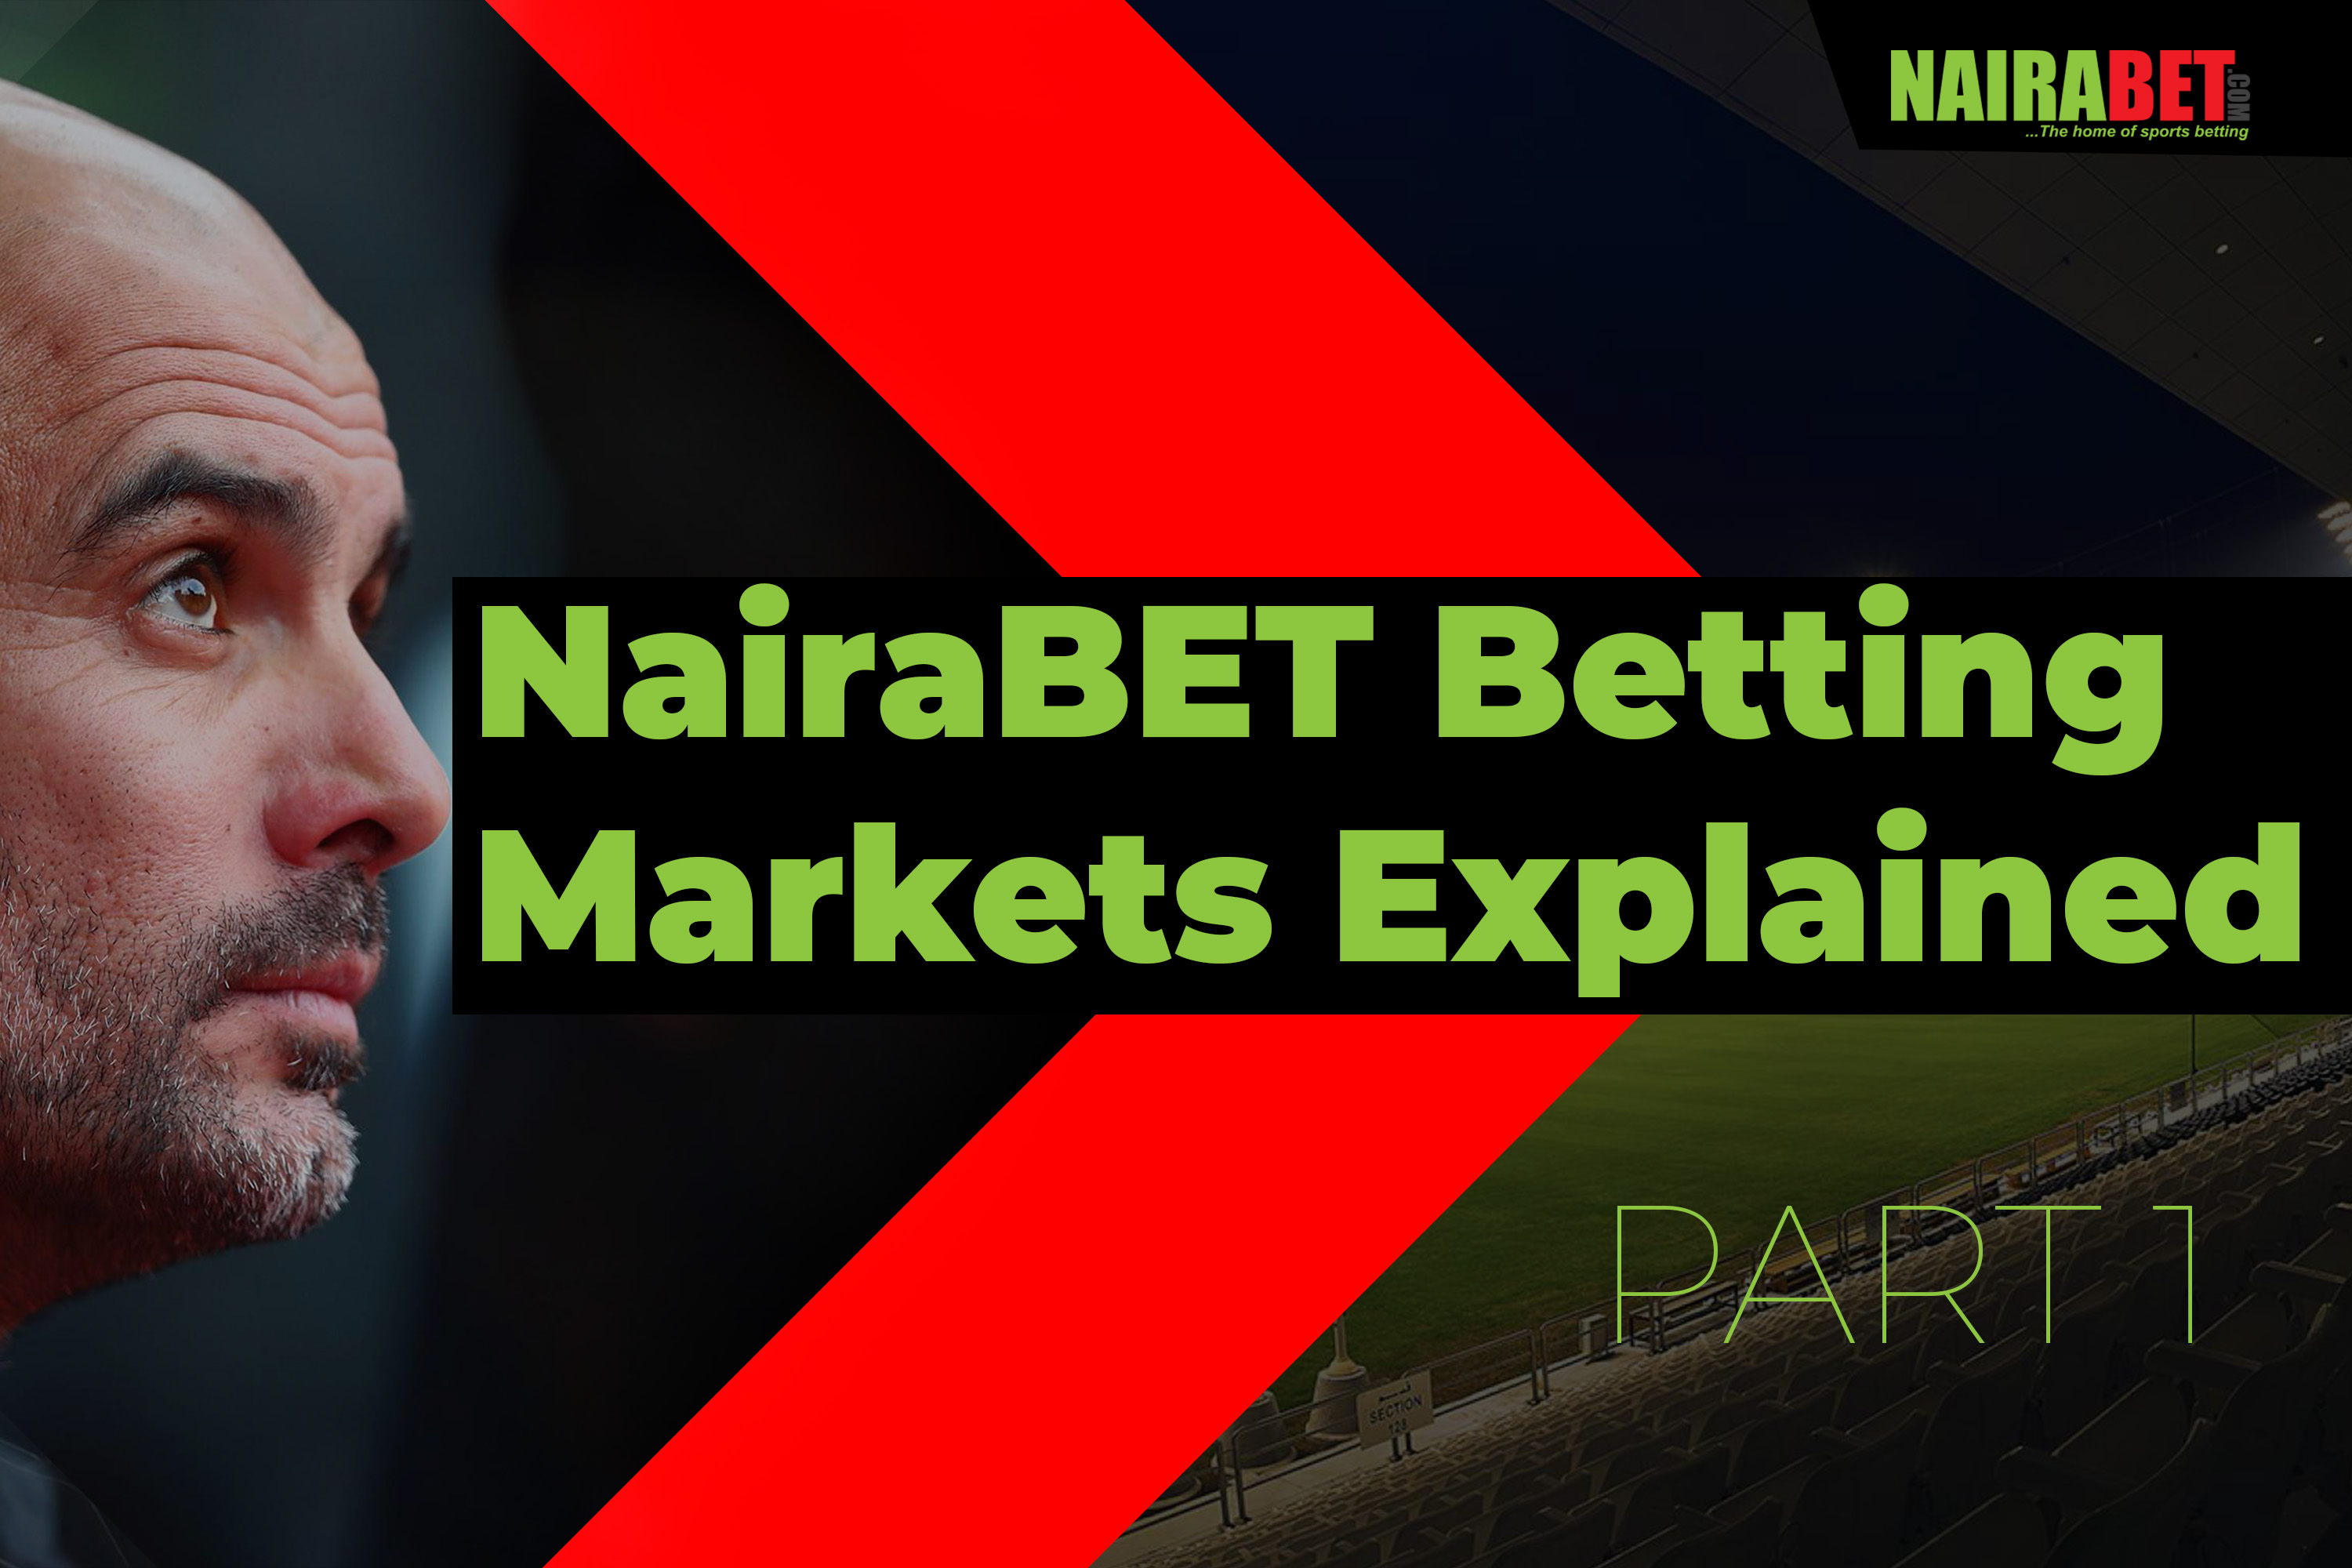 nairabet betting markets